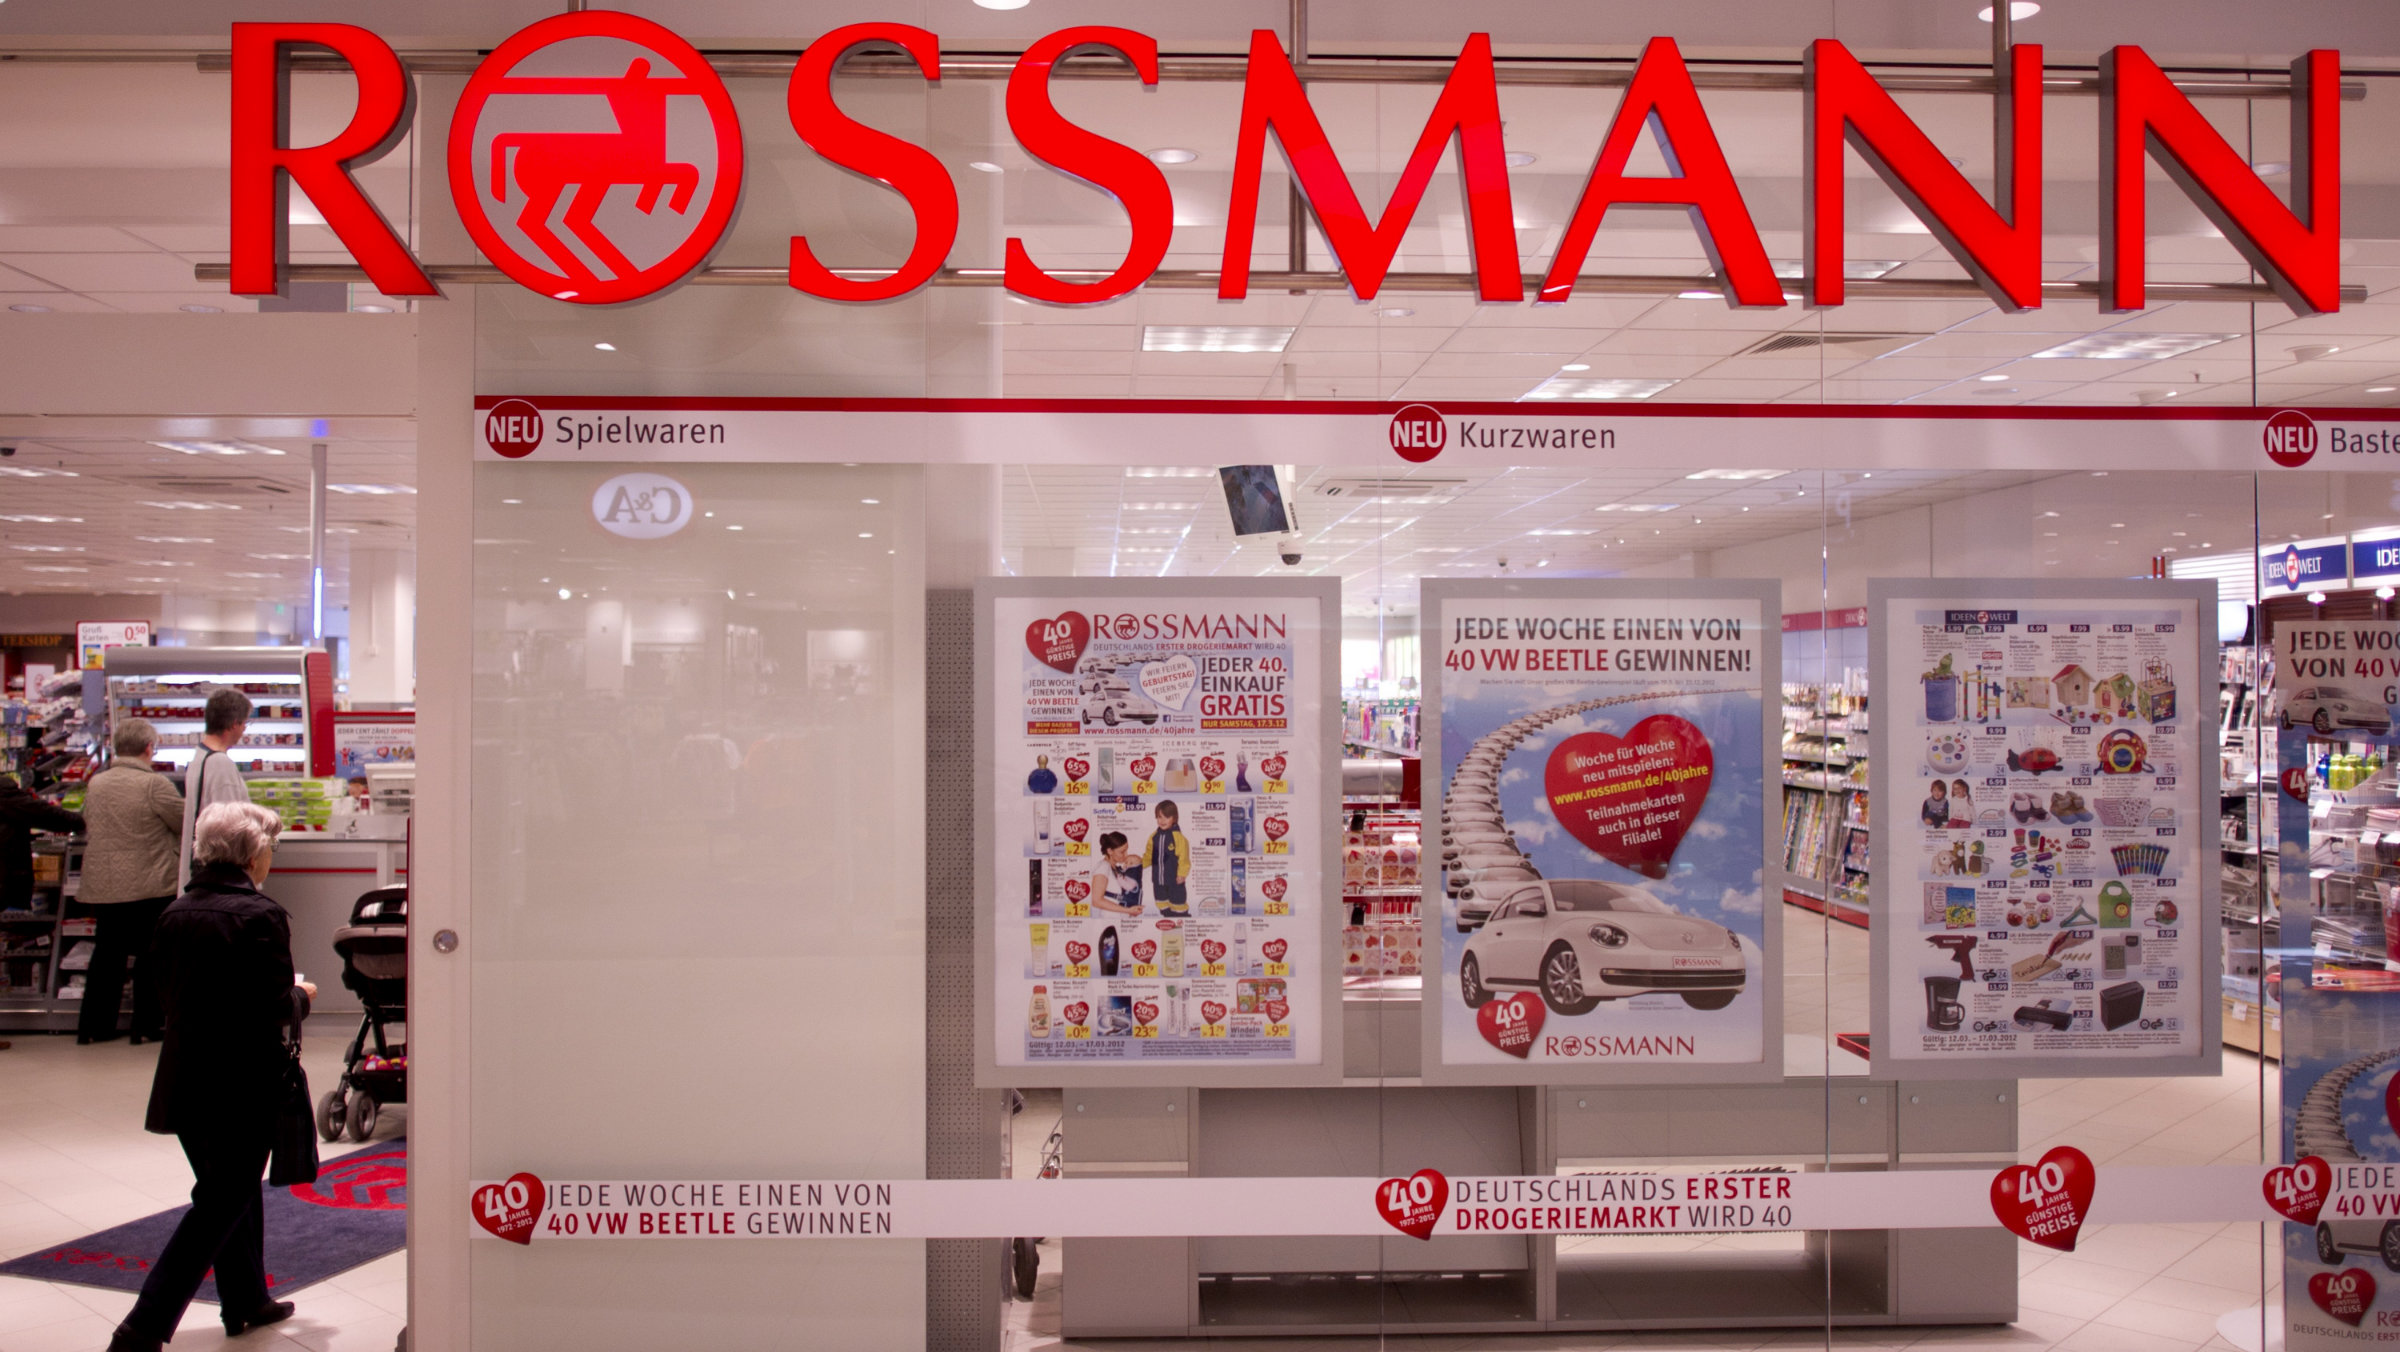 German drugstore Rossmann is outraged over exorbitant new public broadcasting fees places on companies.